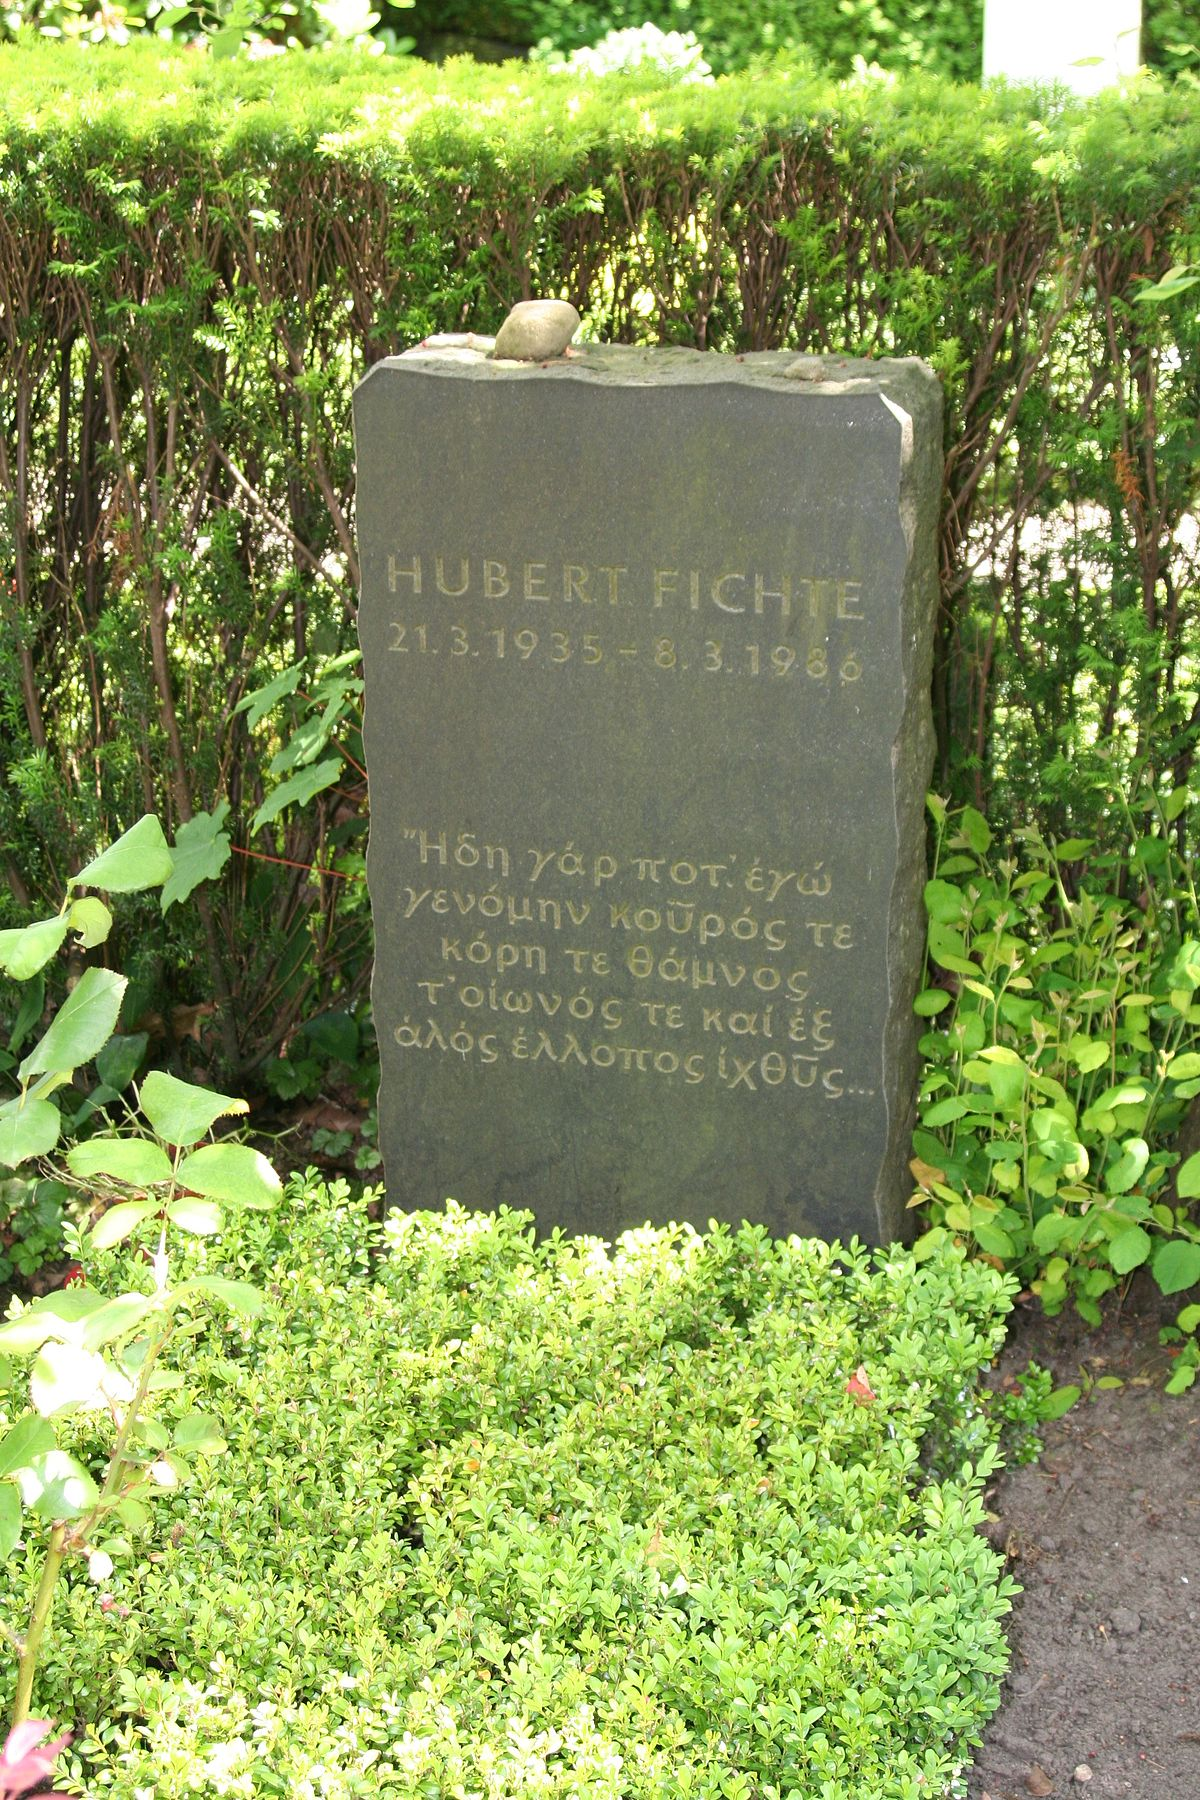 hubert fichte – wikipedia